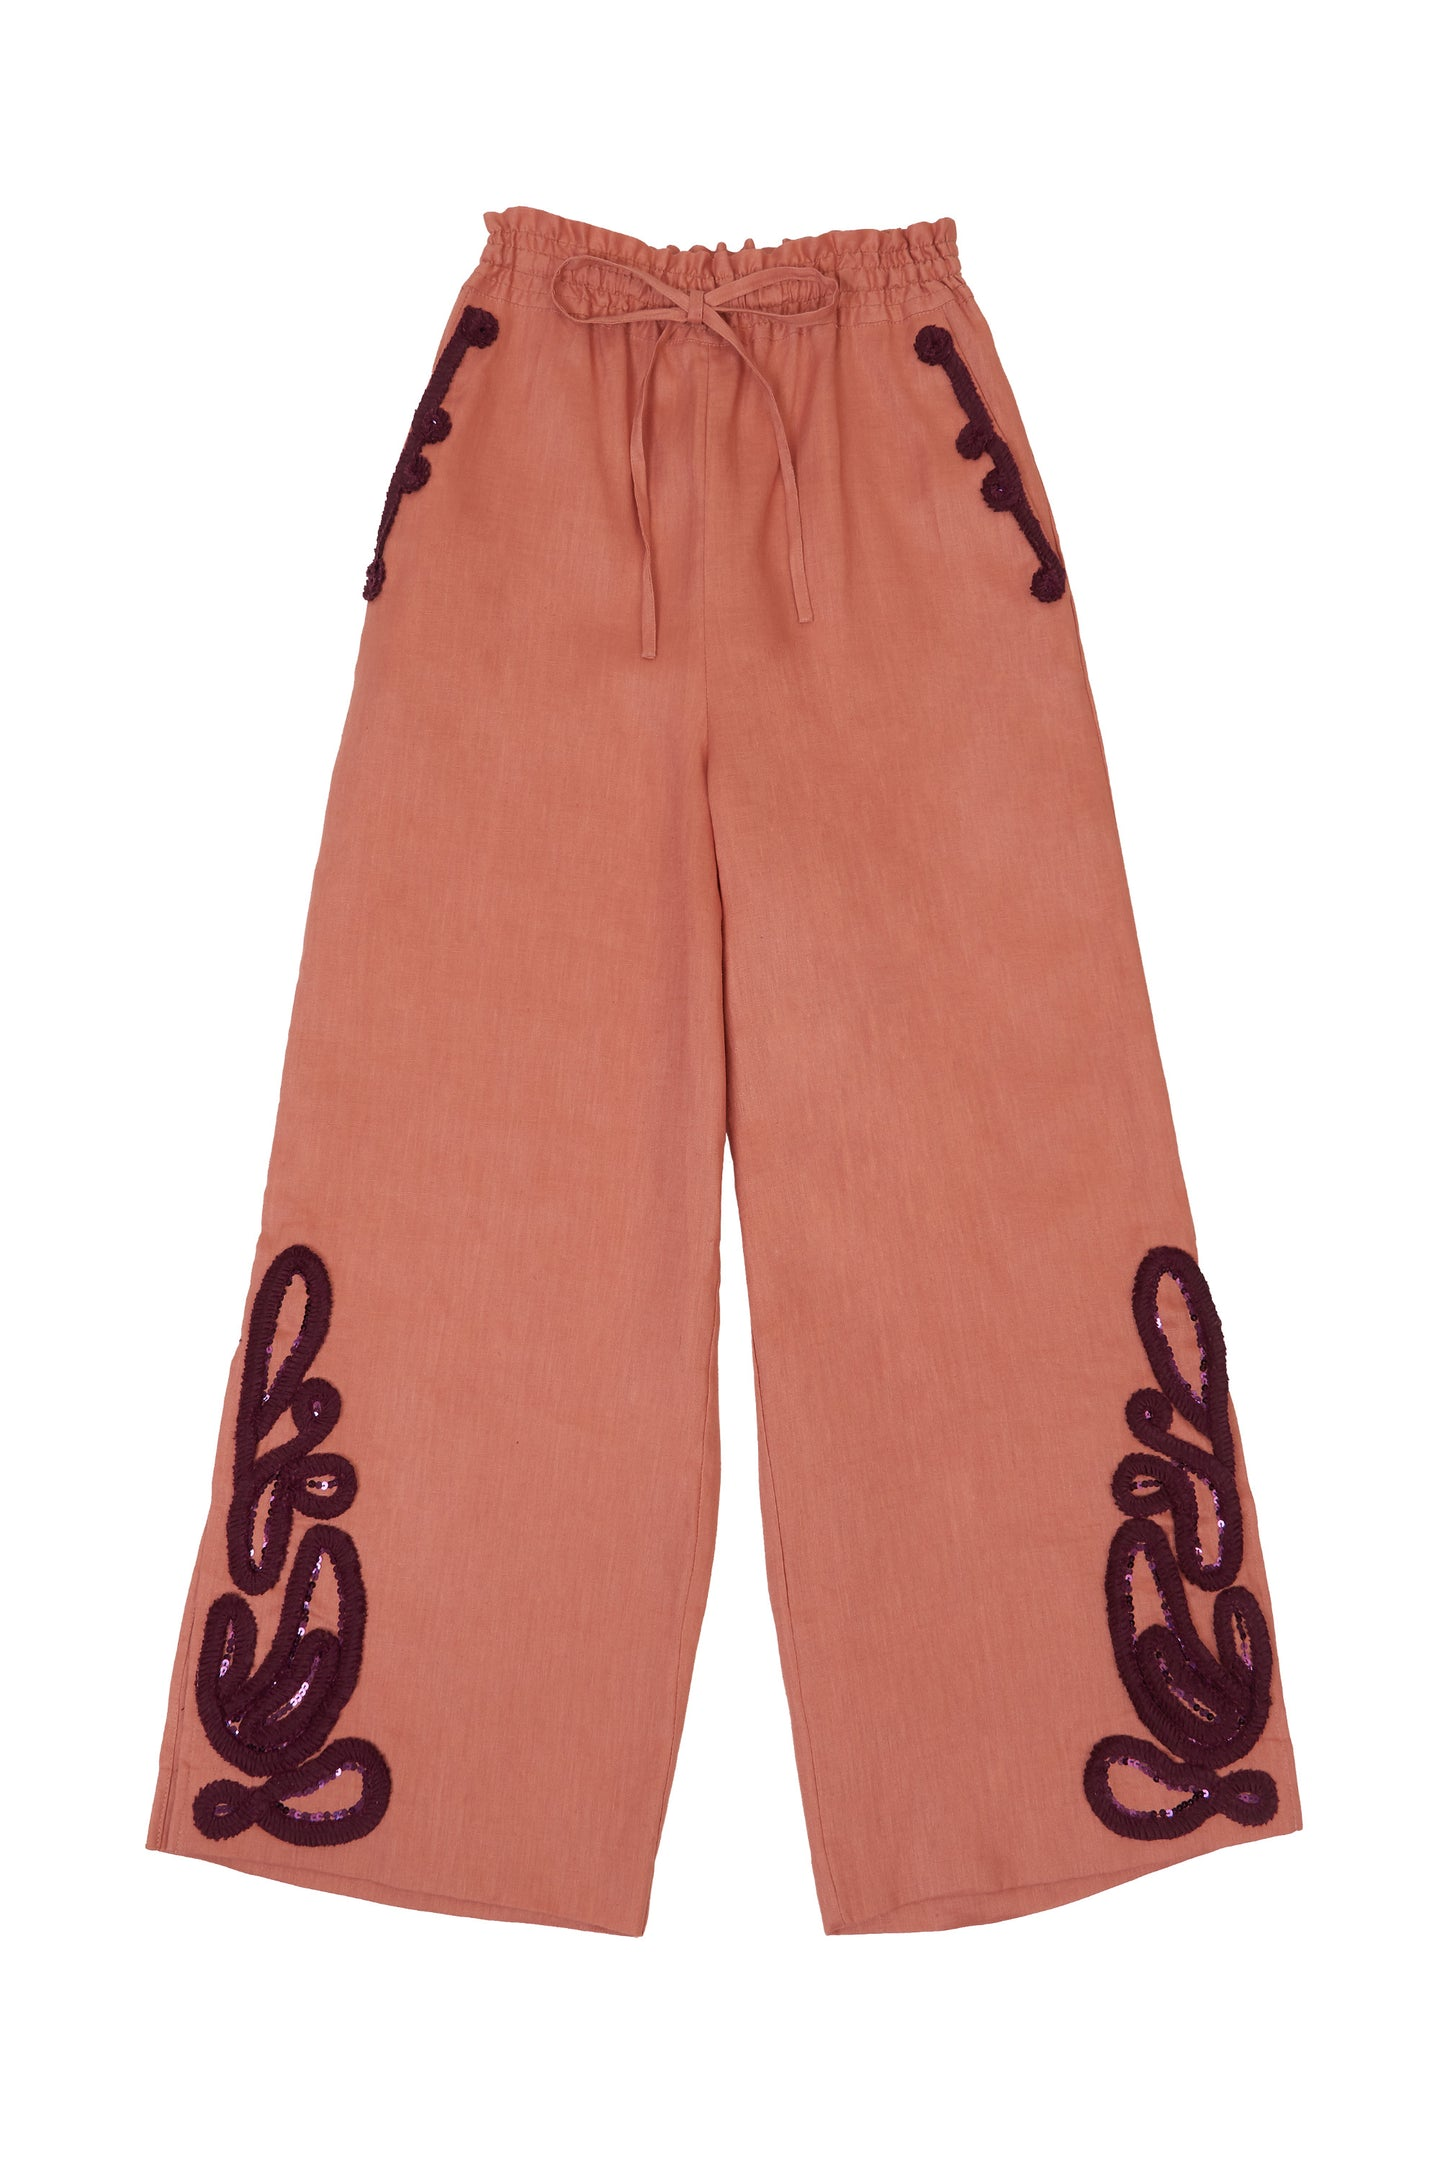 Tape Embroidery Pants | Terracotta